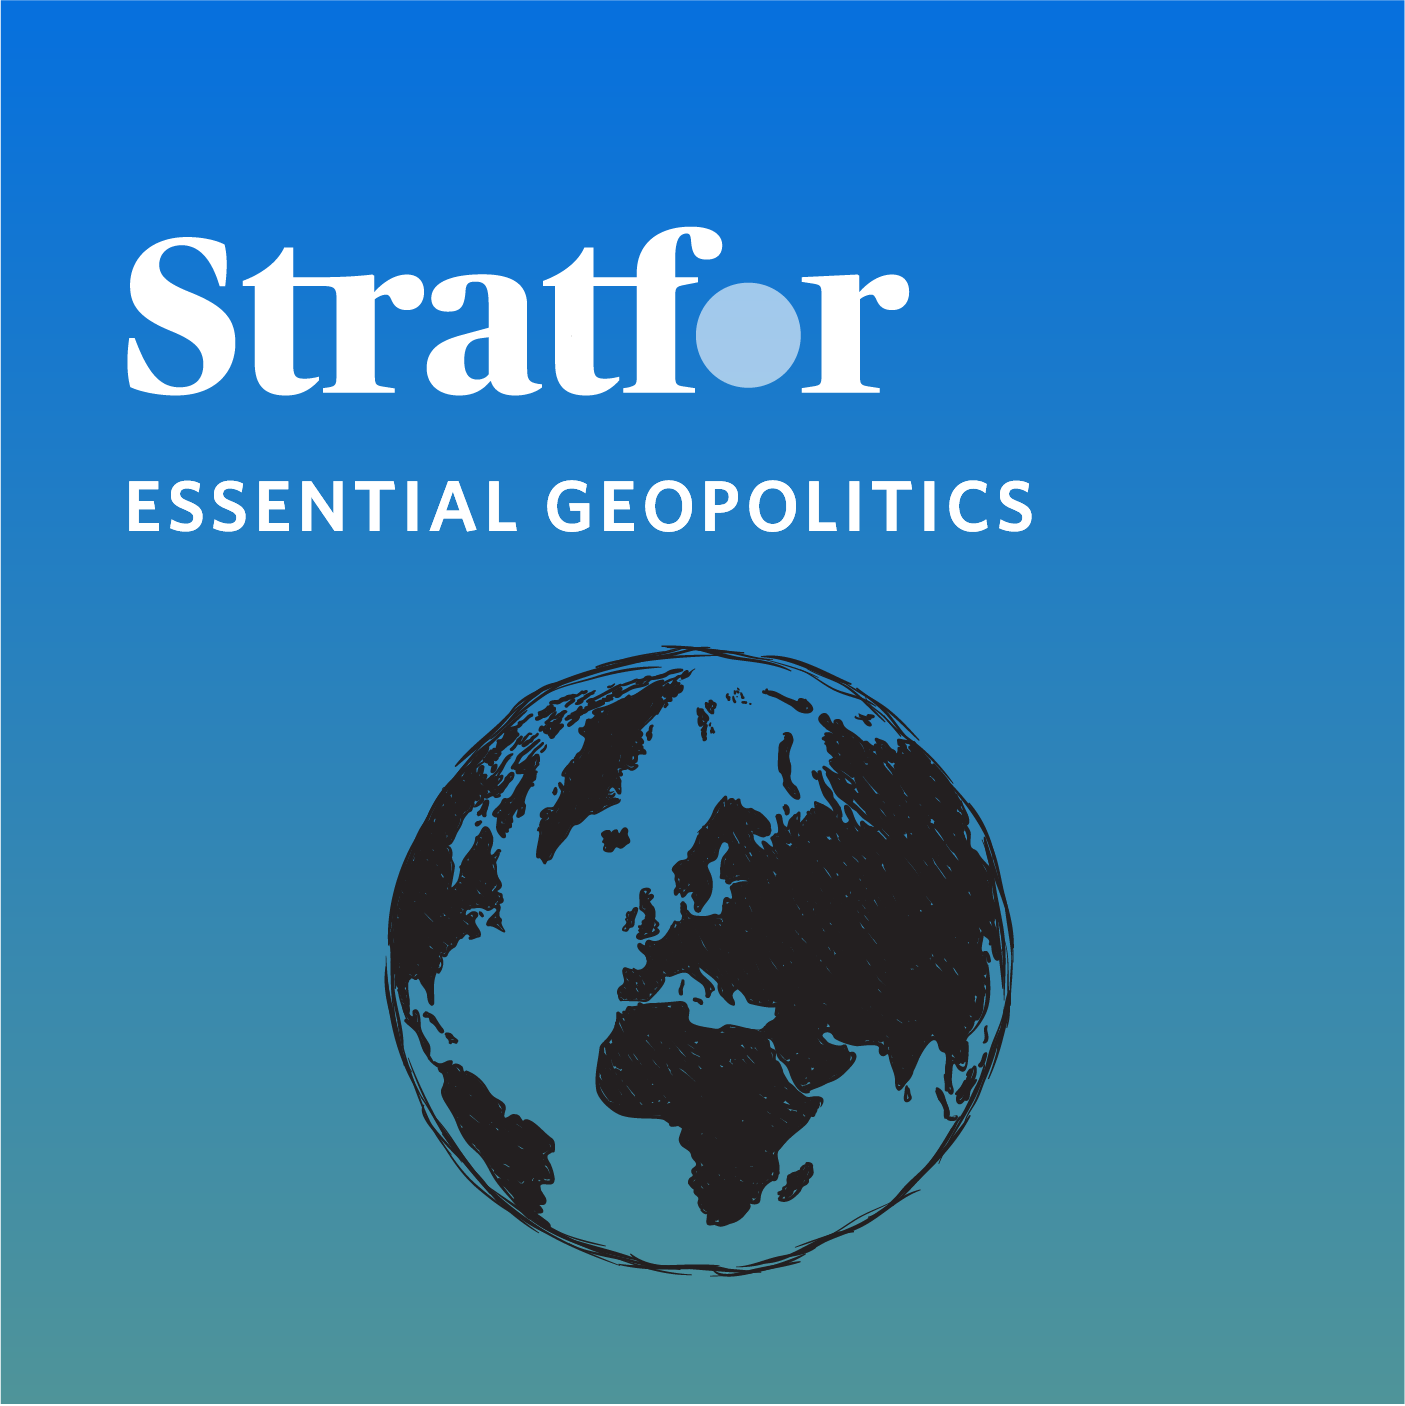 Essential Geopolitics: Protests, Looting and Radical Extremism